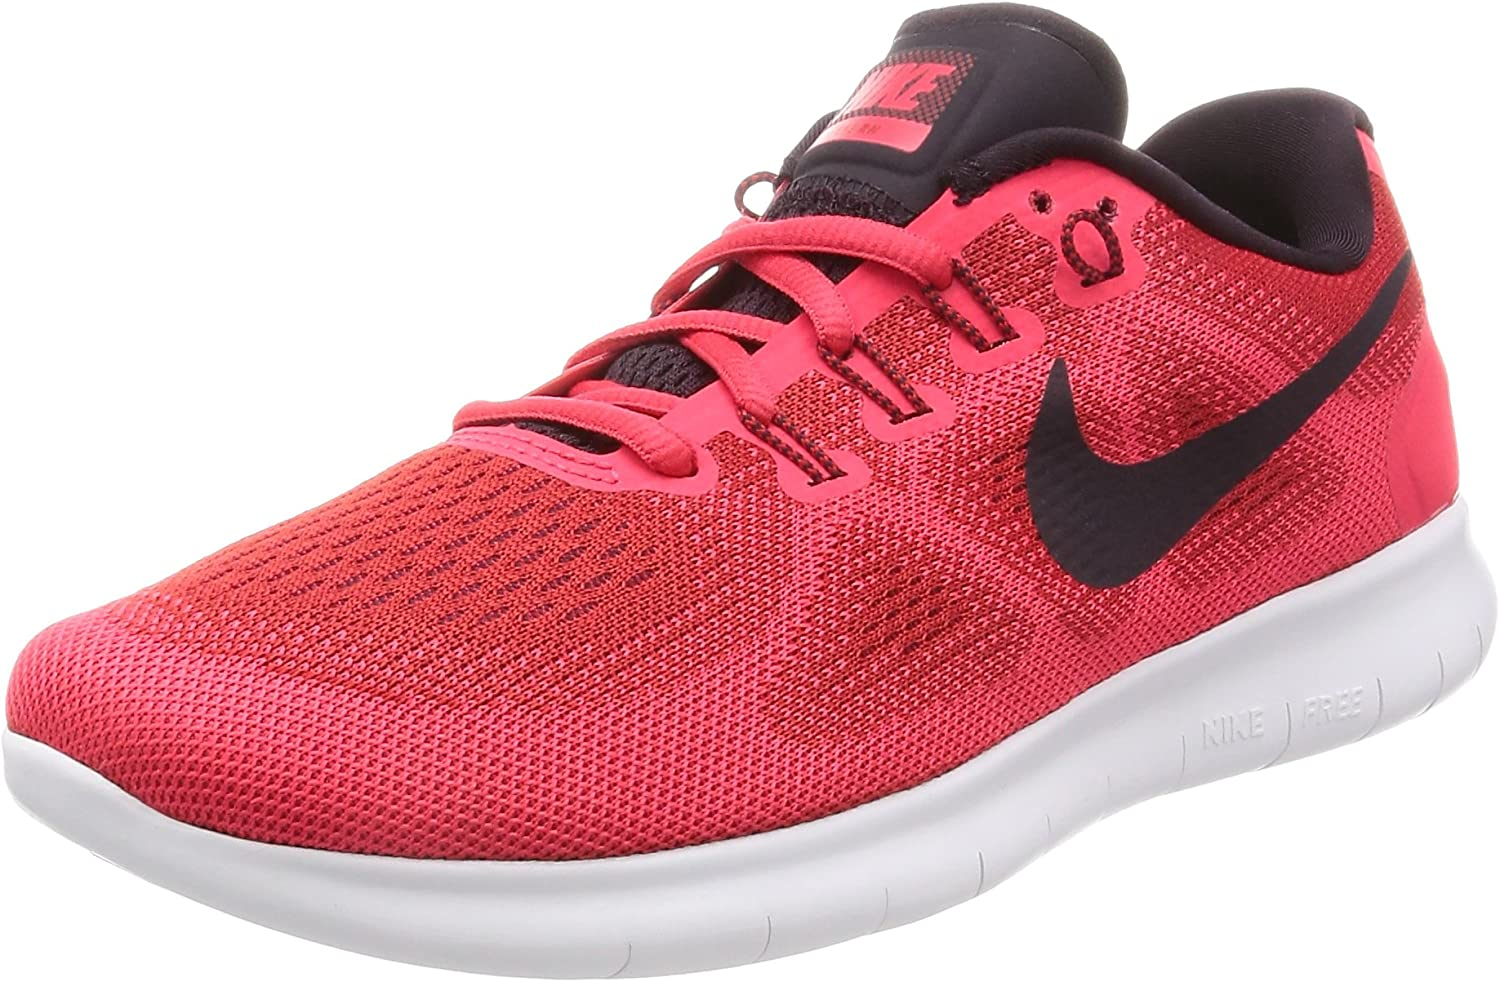 NIKE Women's Free RN 2017 Size US 7.5 M University Red Black-Port Wine